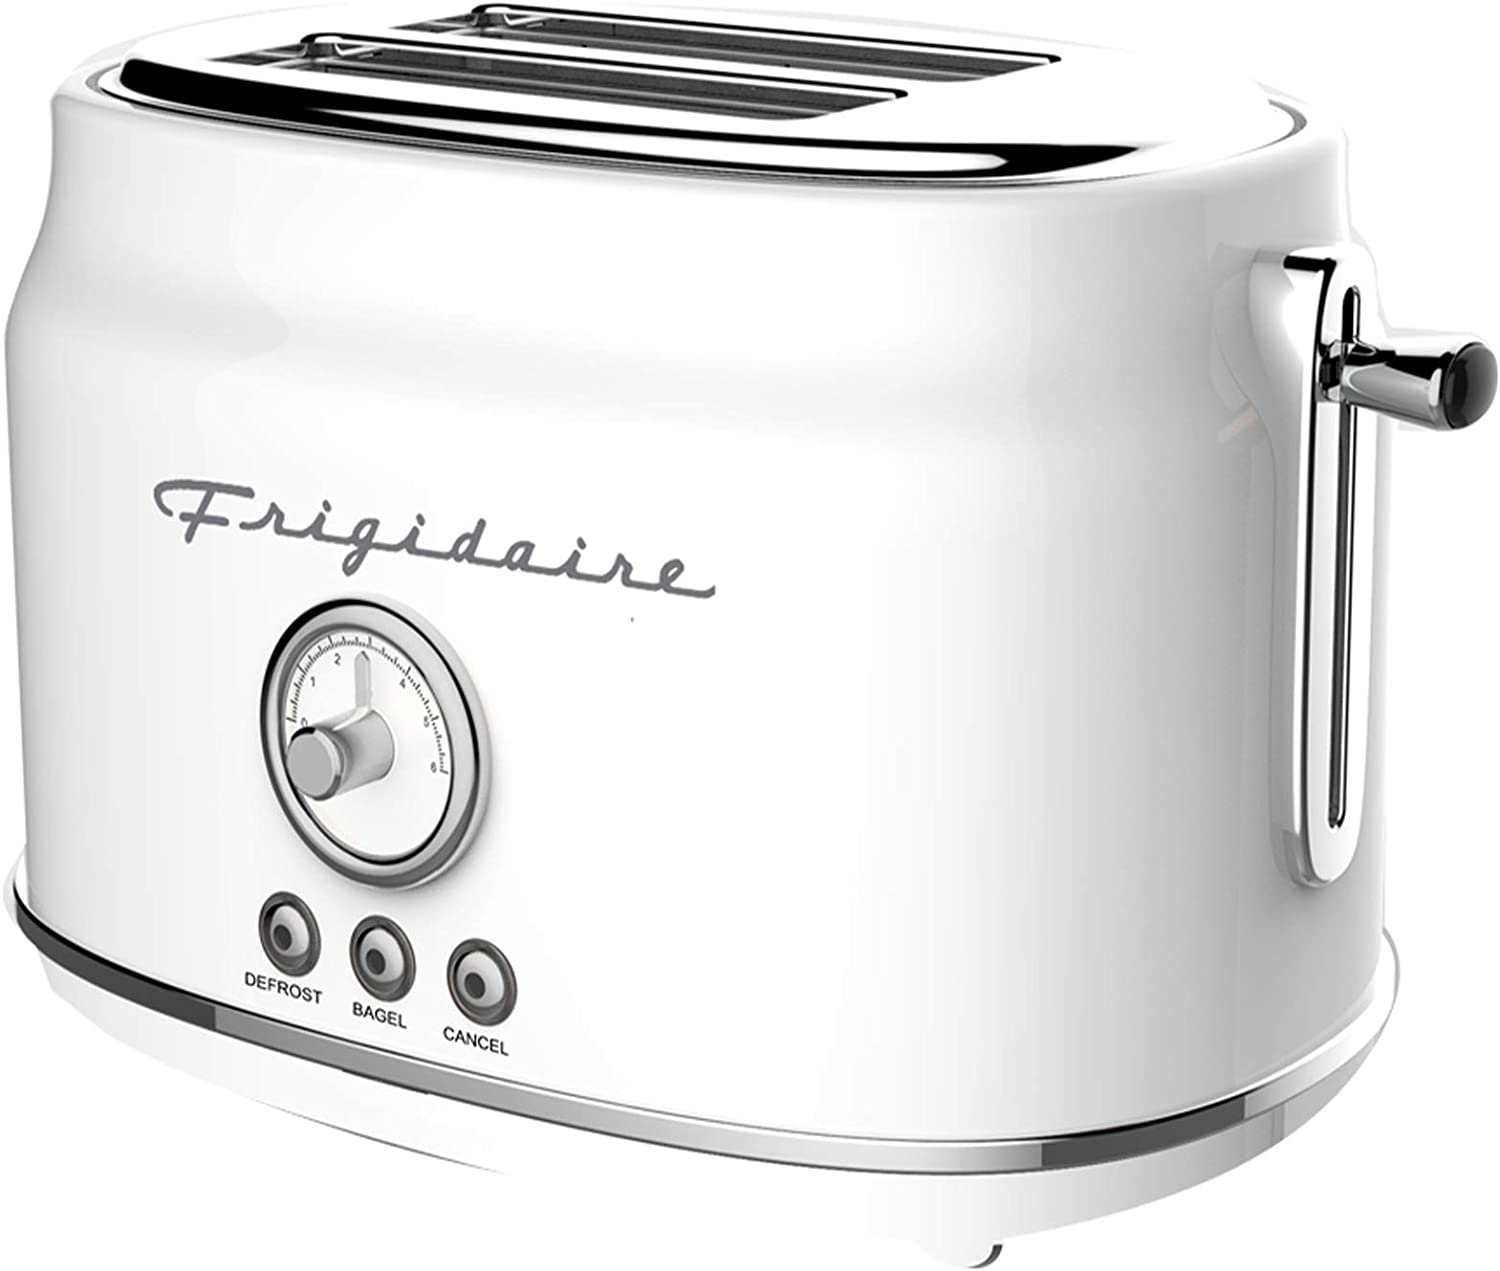 Frigidaire ETO102-WHITE Retro Wide 2-Slice Toaster Perfect for Bread, English Muffins, Bagels, 5 Browning Levels, 900w, WHITE